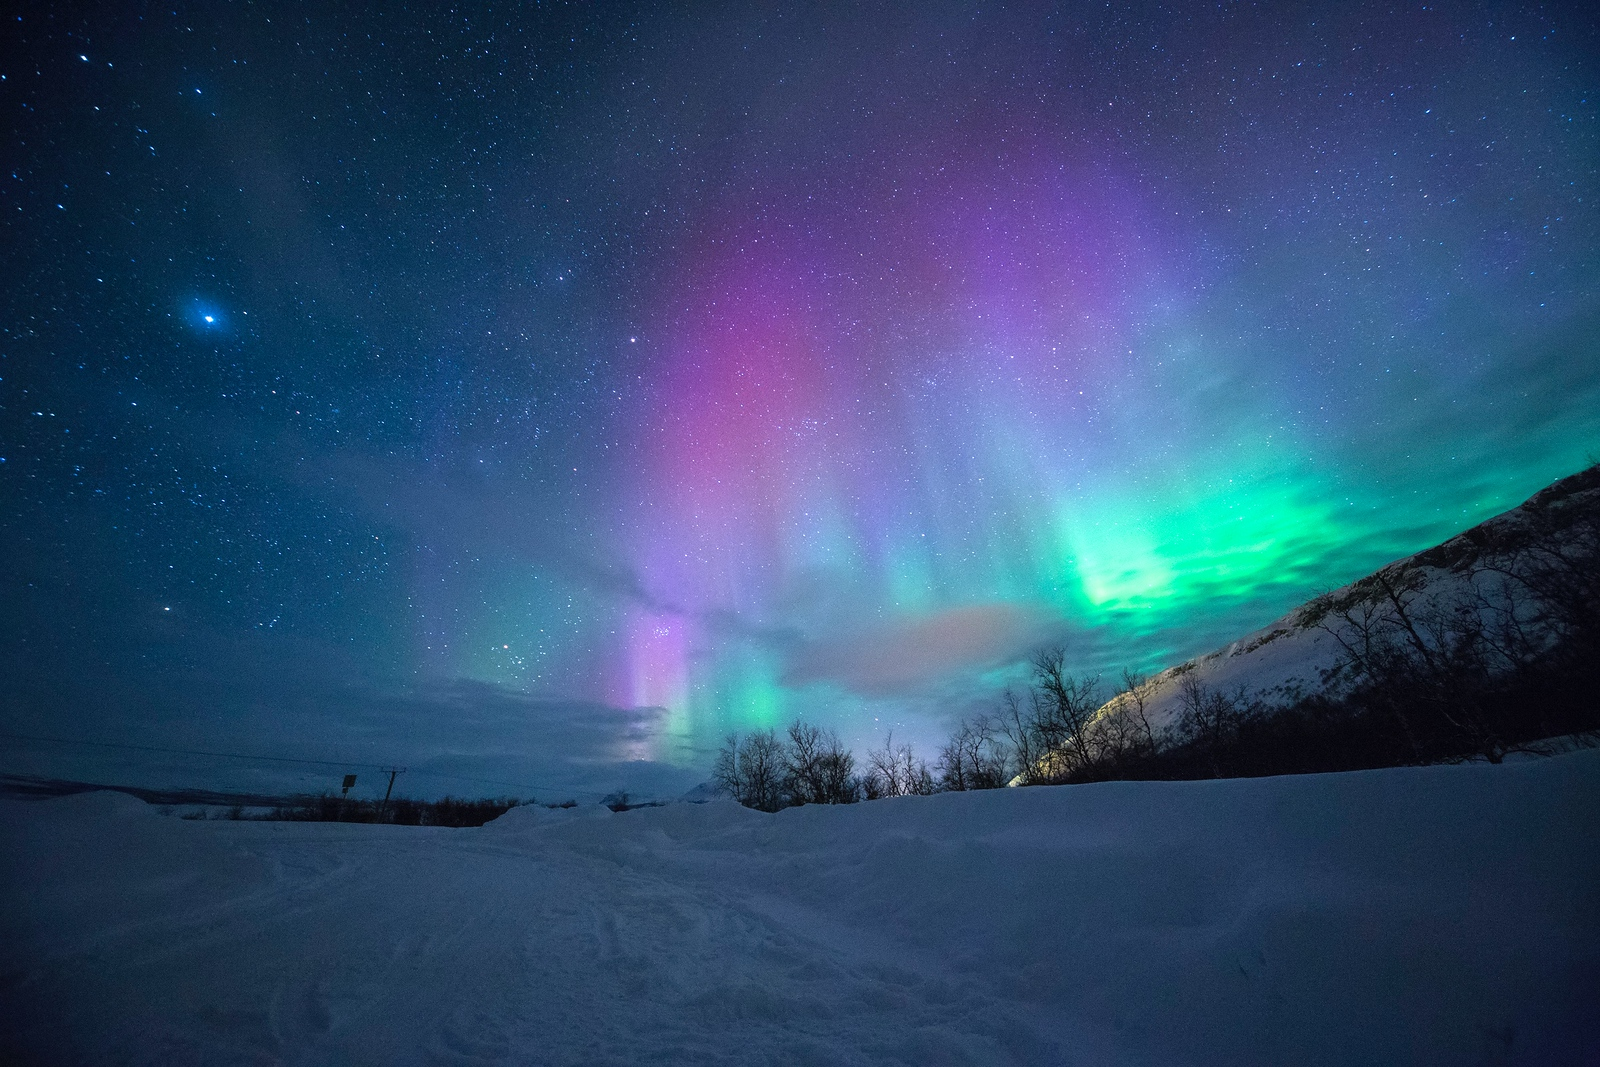 The 10 Best Places to See the Northern Lights - Norway